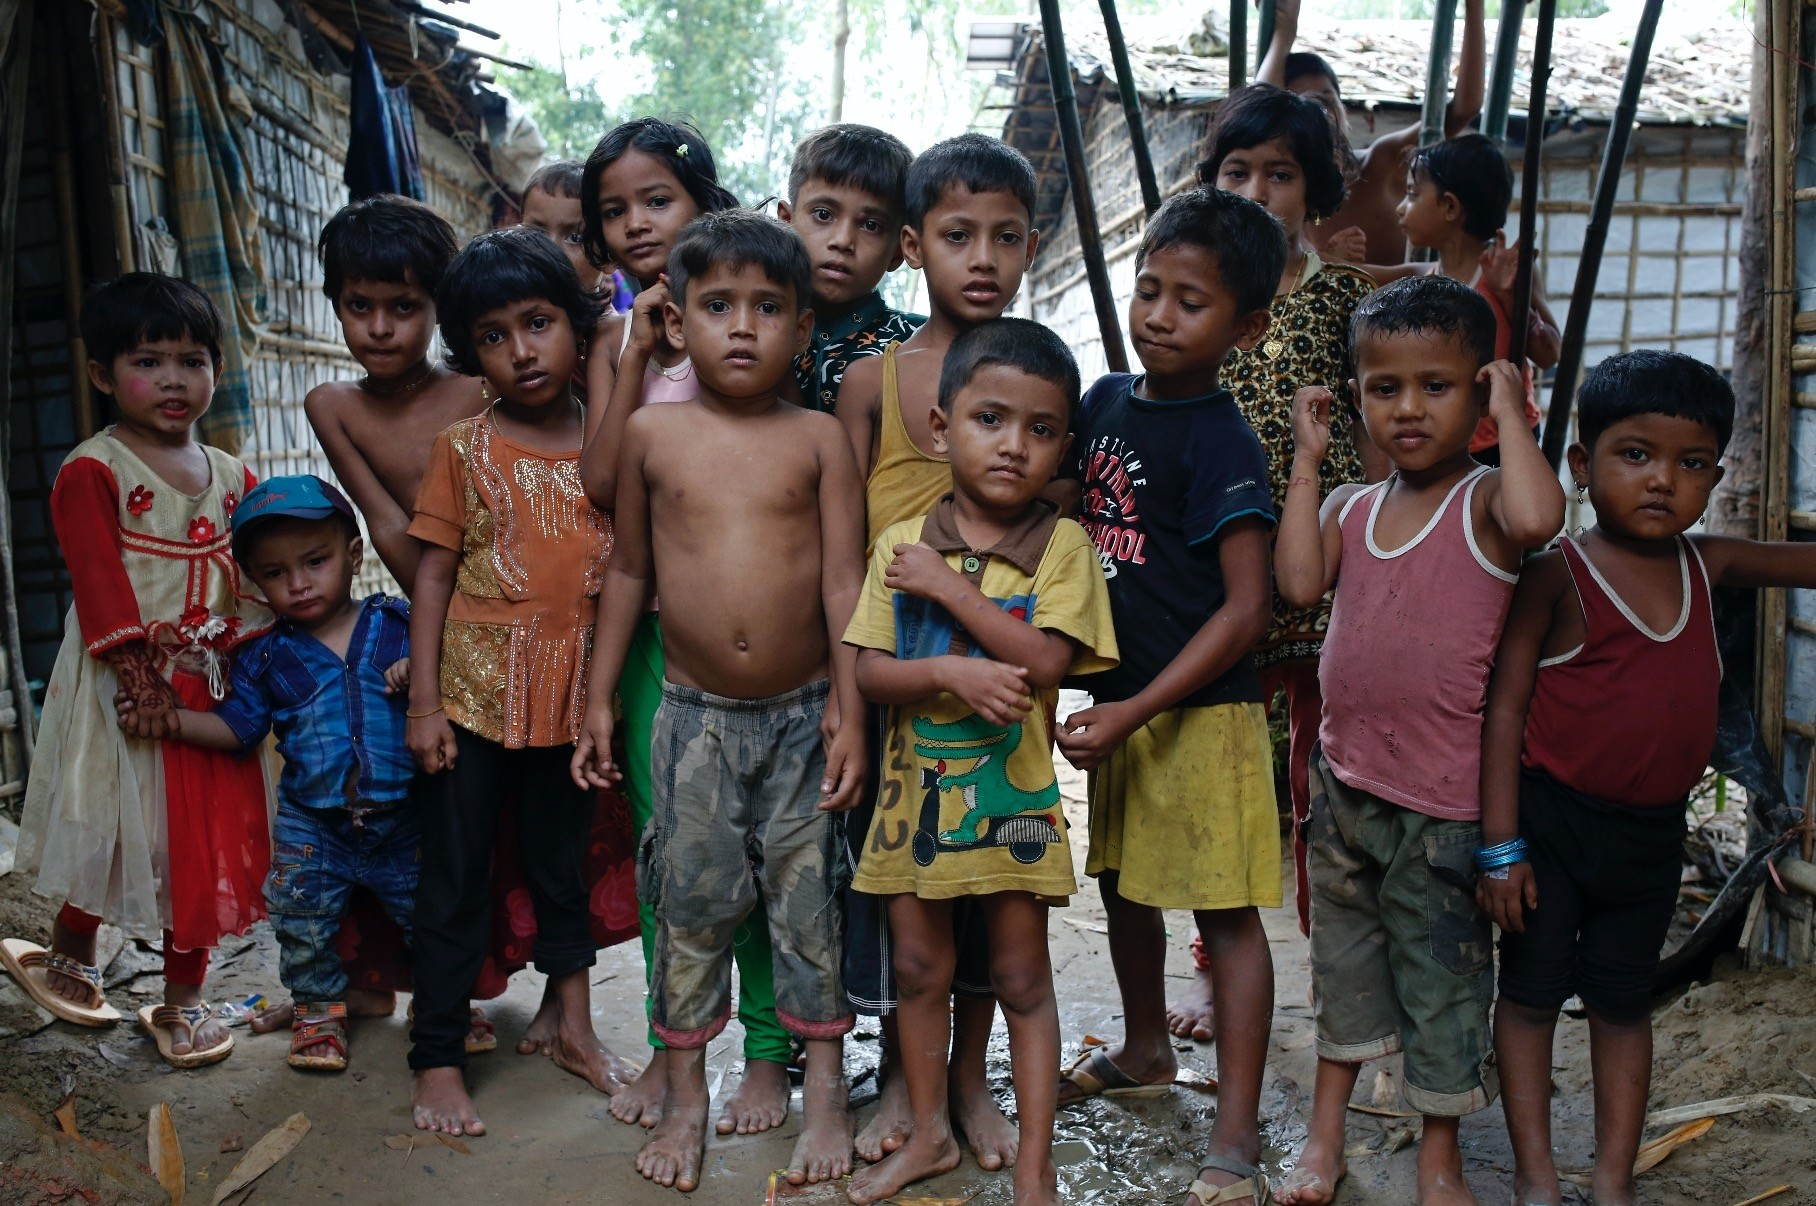 A group of Rohingya refugee children stand at a makeshift camp, Coxu2019s Bazar, Aug. 24.